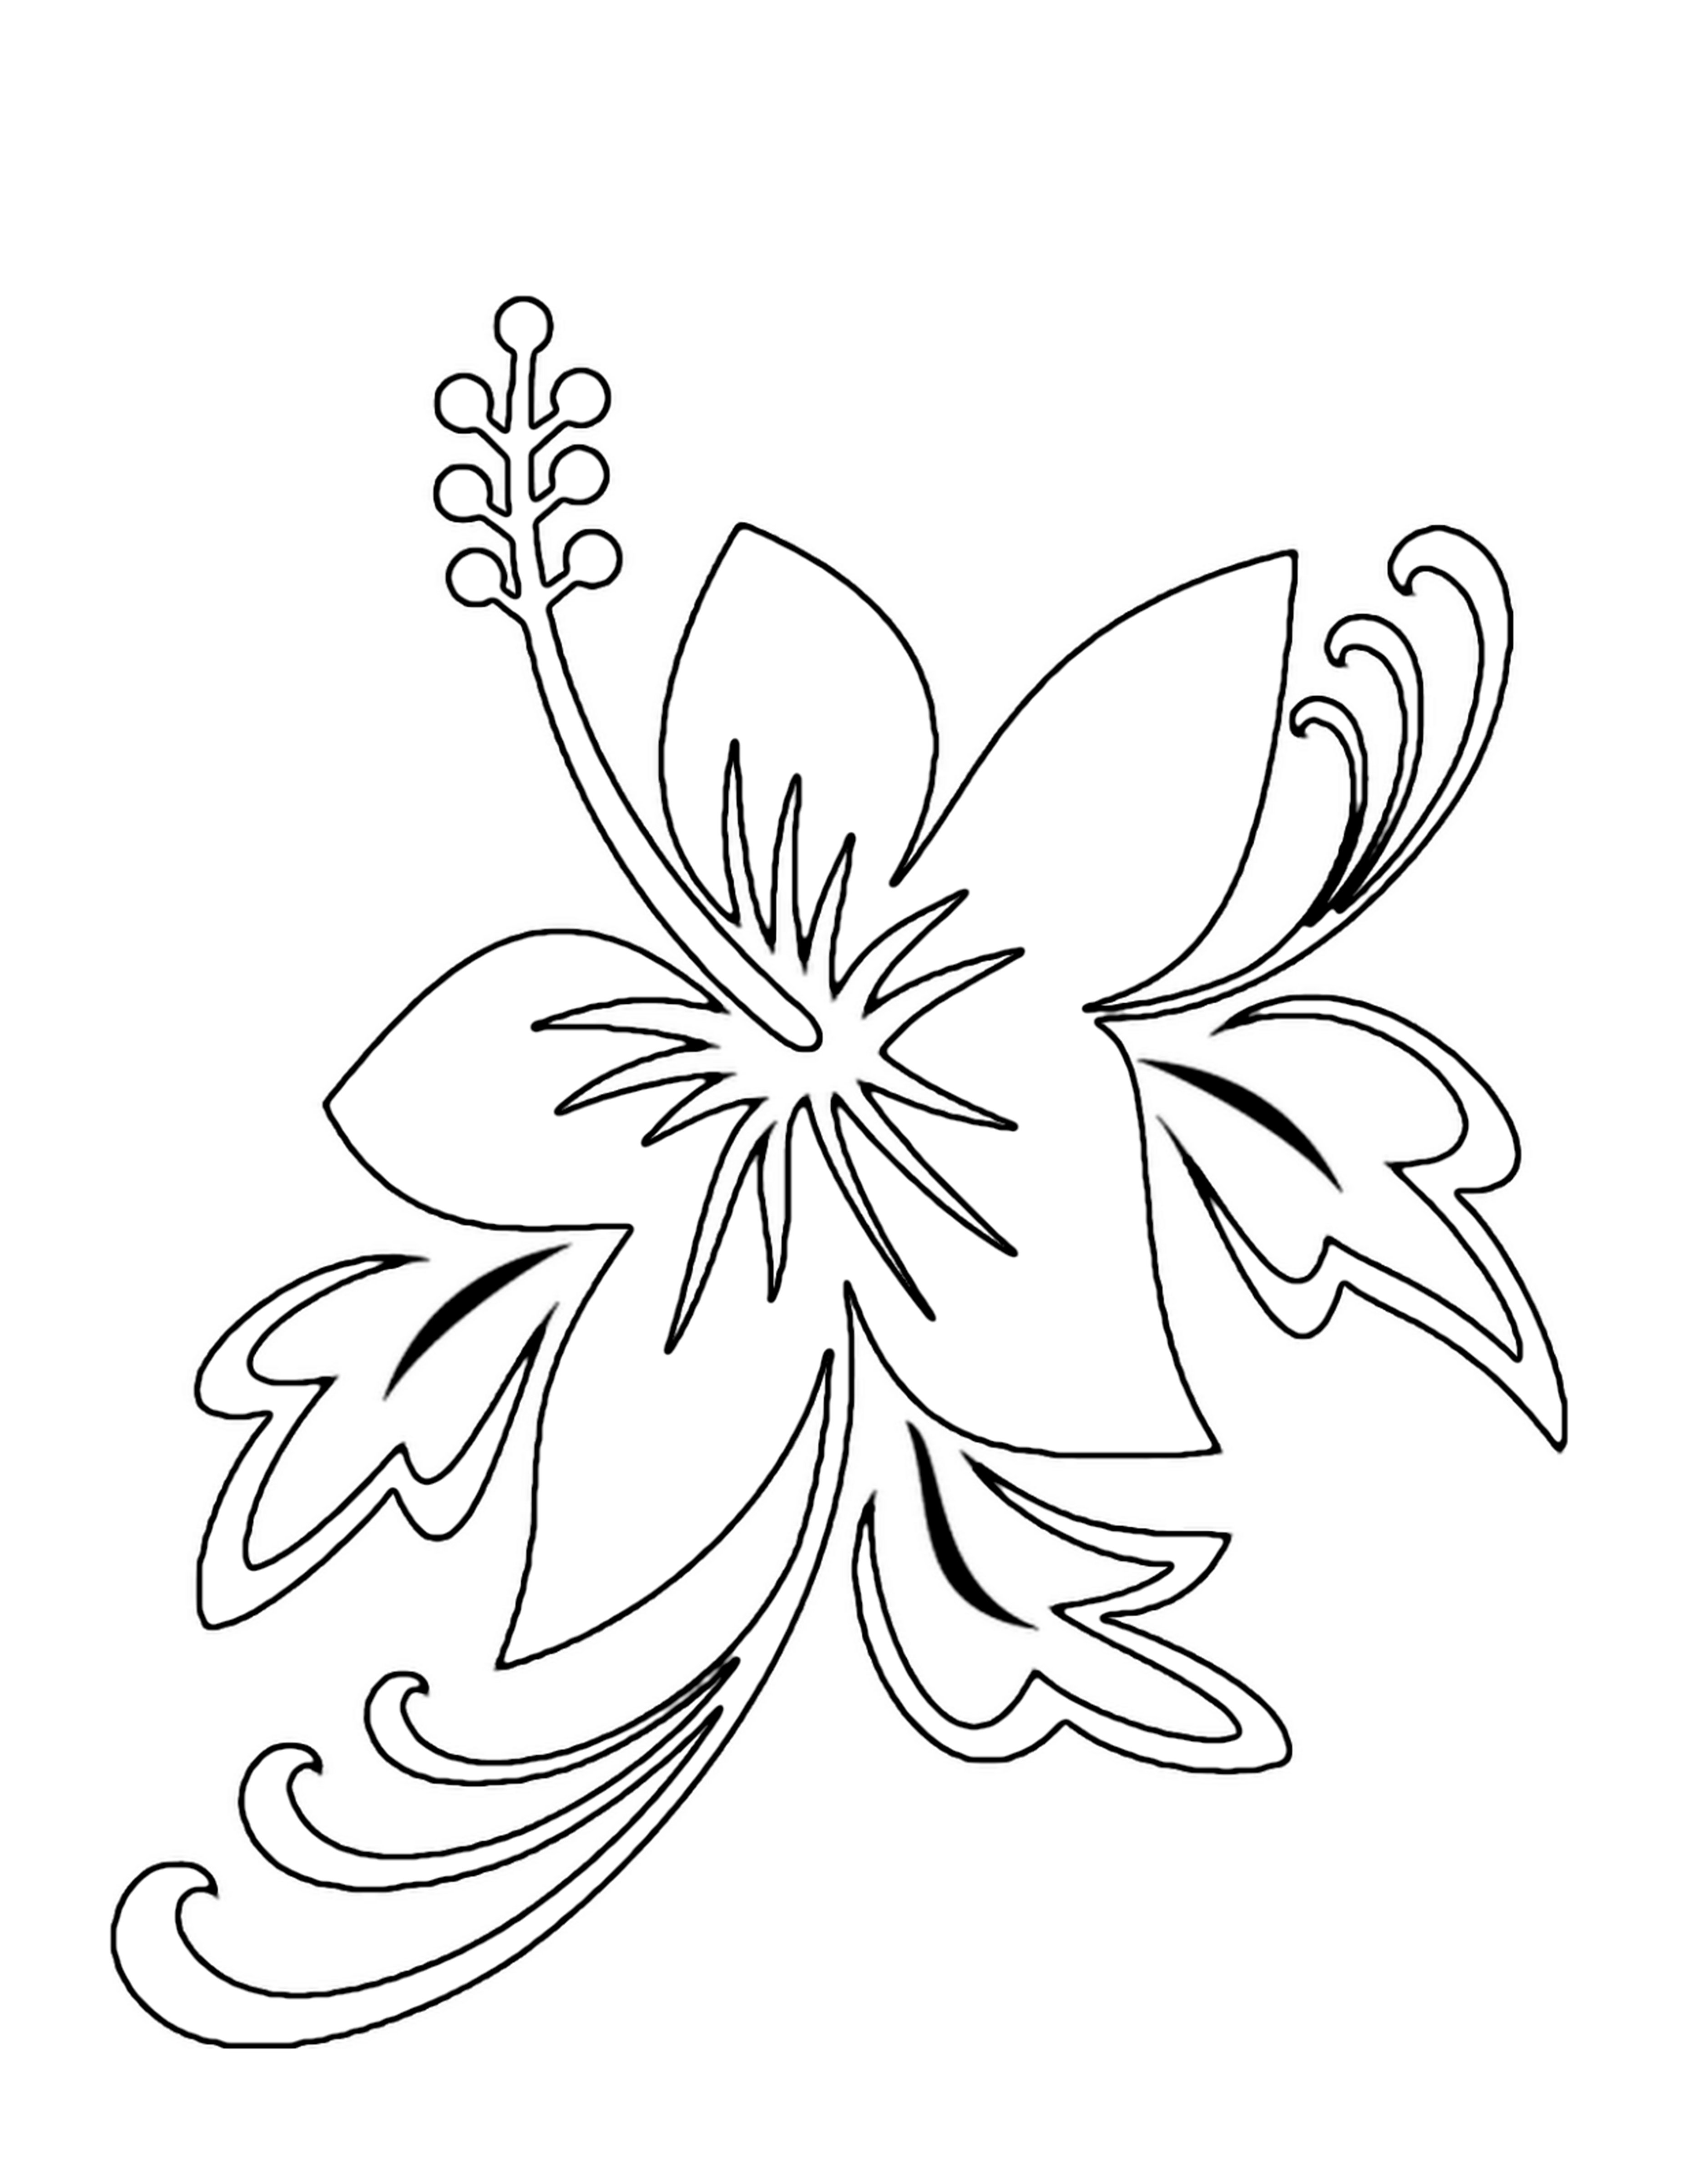 flower colouring pictures to print flower13 flowers coloring pages coloring page book for kids print flower colouring to pictures